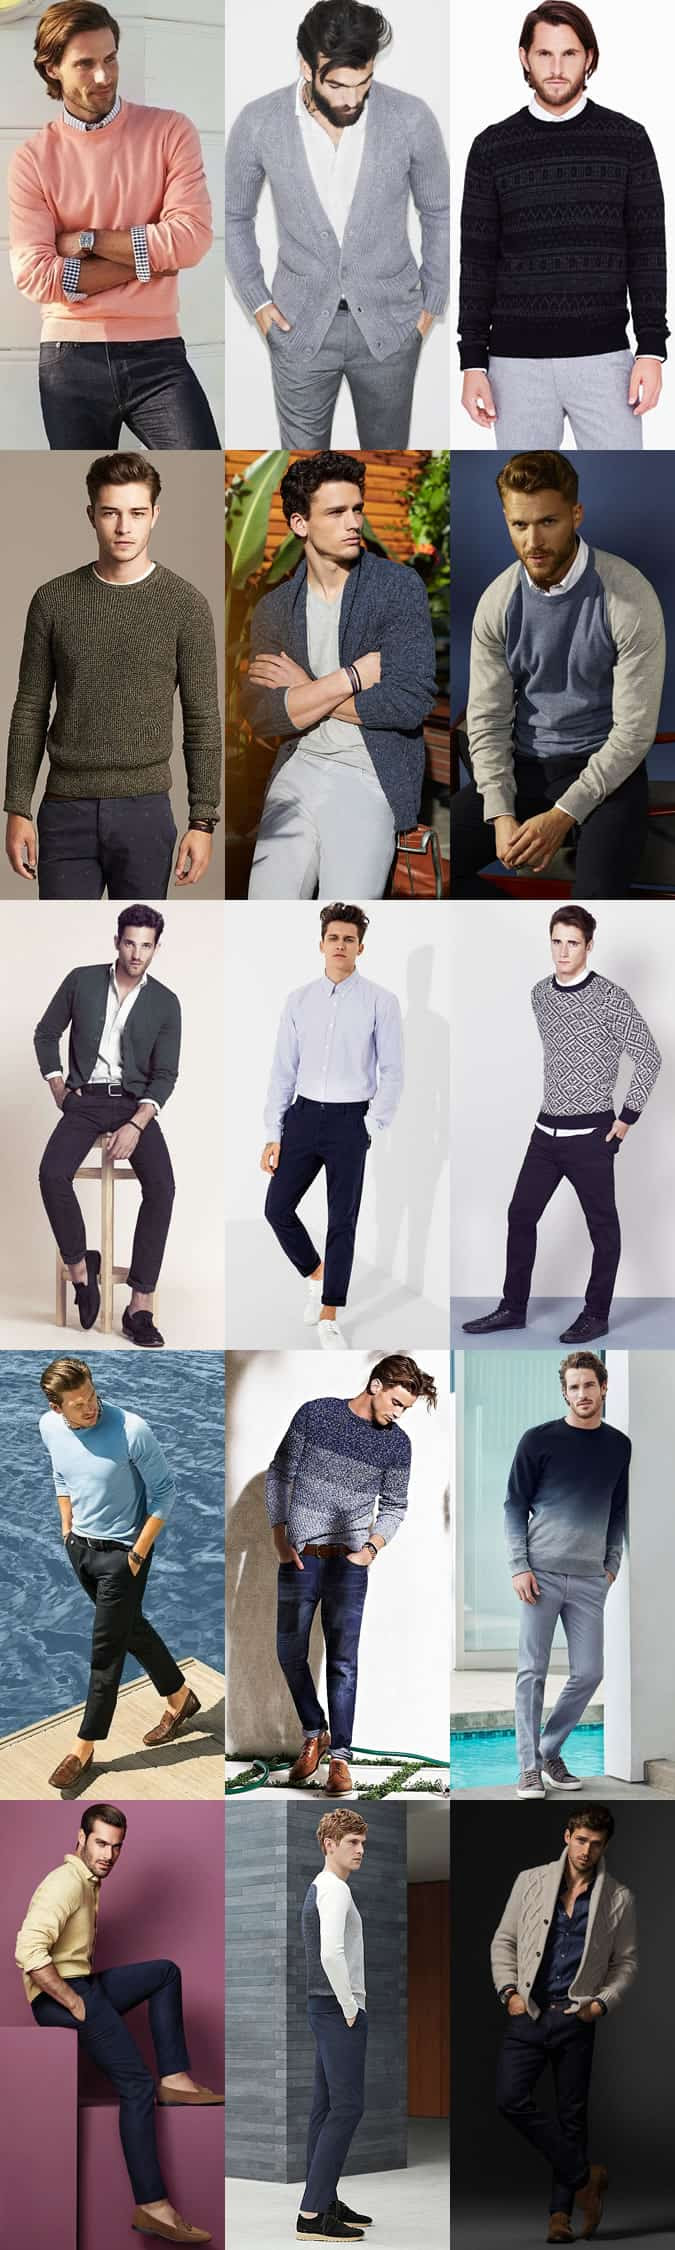 Men's Date Outfit Inspiration Lookbook - The Home Date